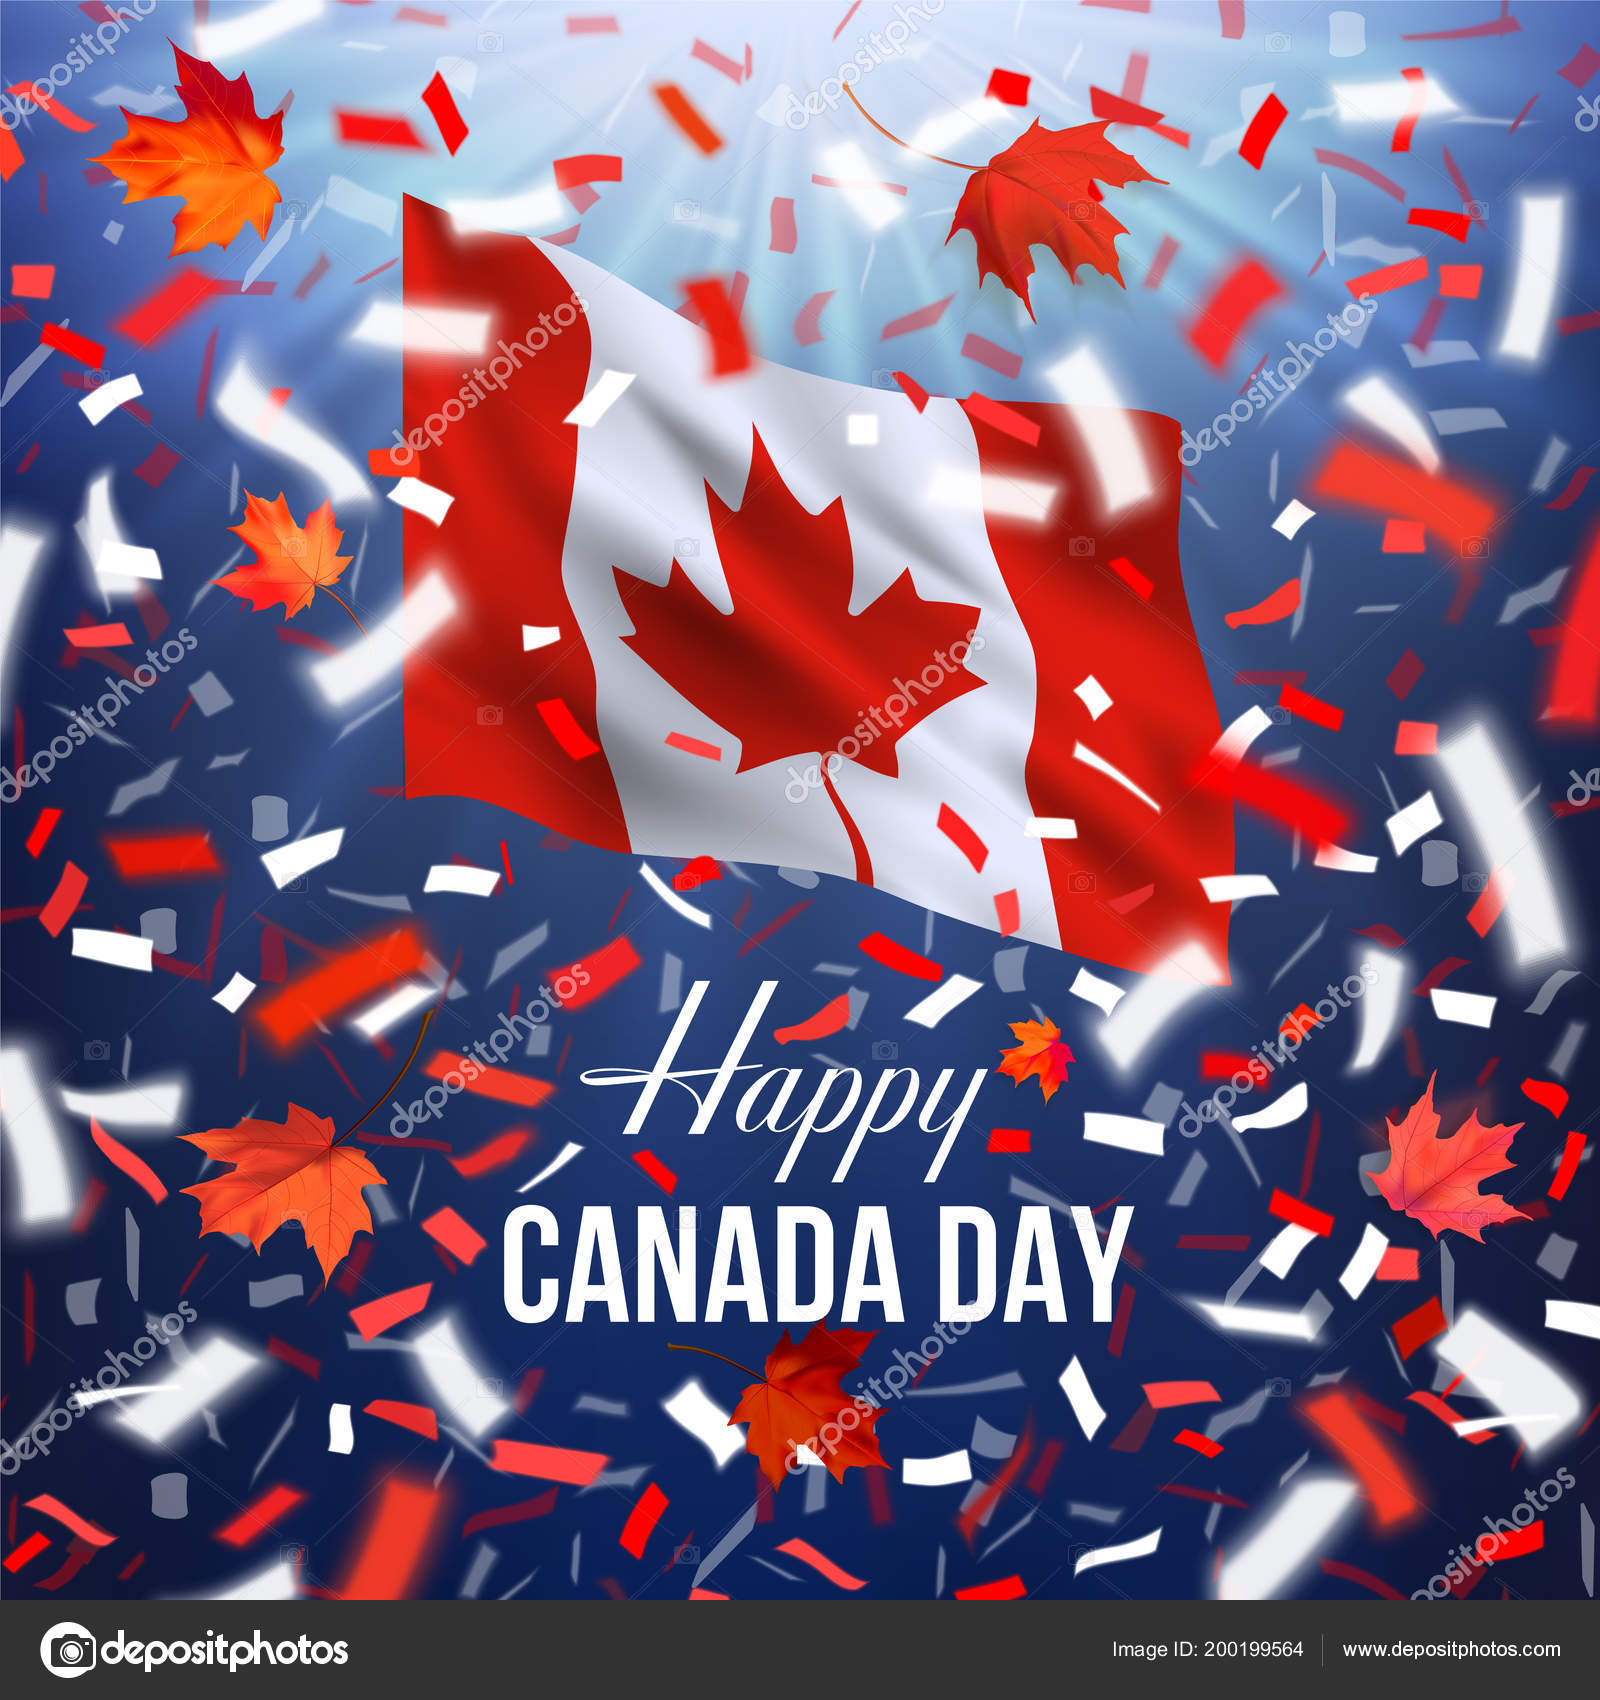 Happy canada day greeting card stock vector mirrima 200199564 happy canada day greeting card stock vector m4hsunfo